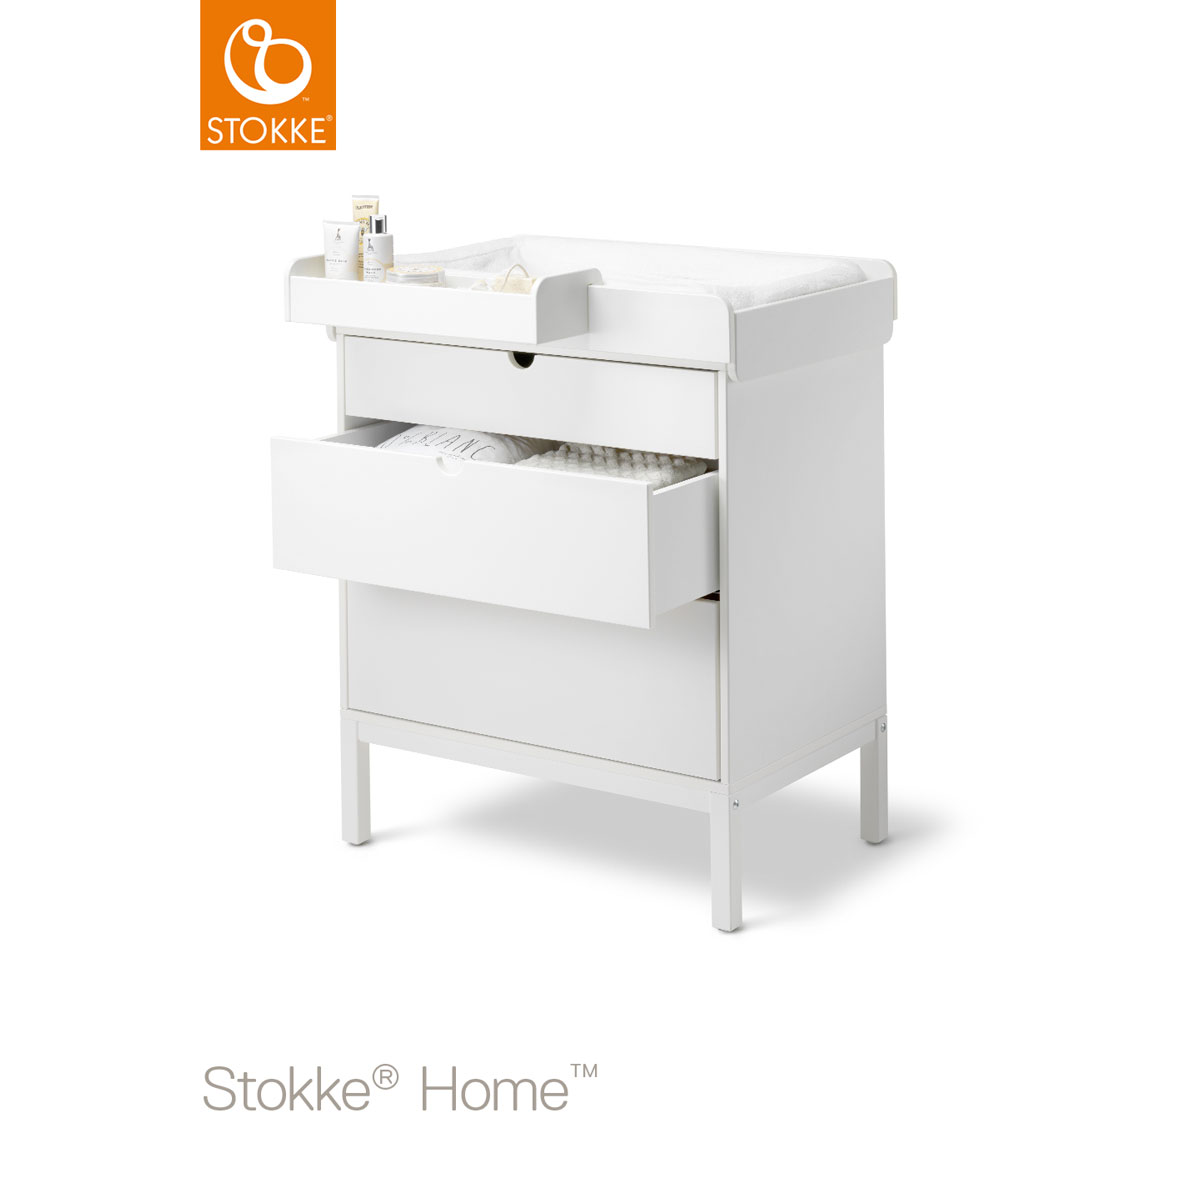 Commode Of Ladenkast.Stokke Home Commode Ladekast Wit